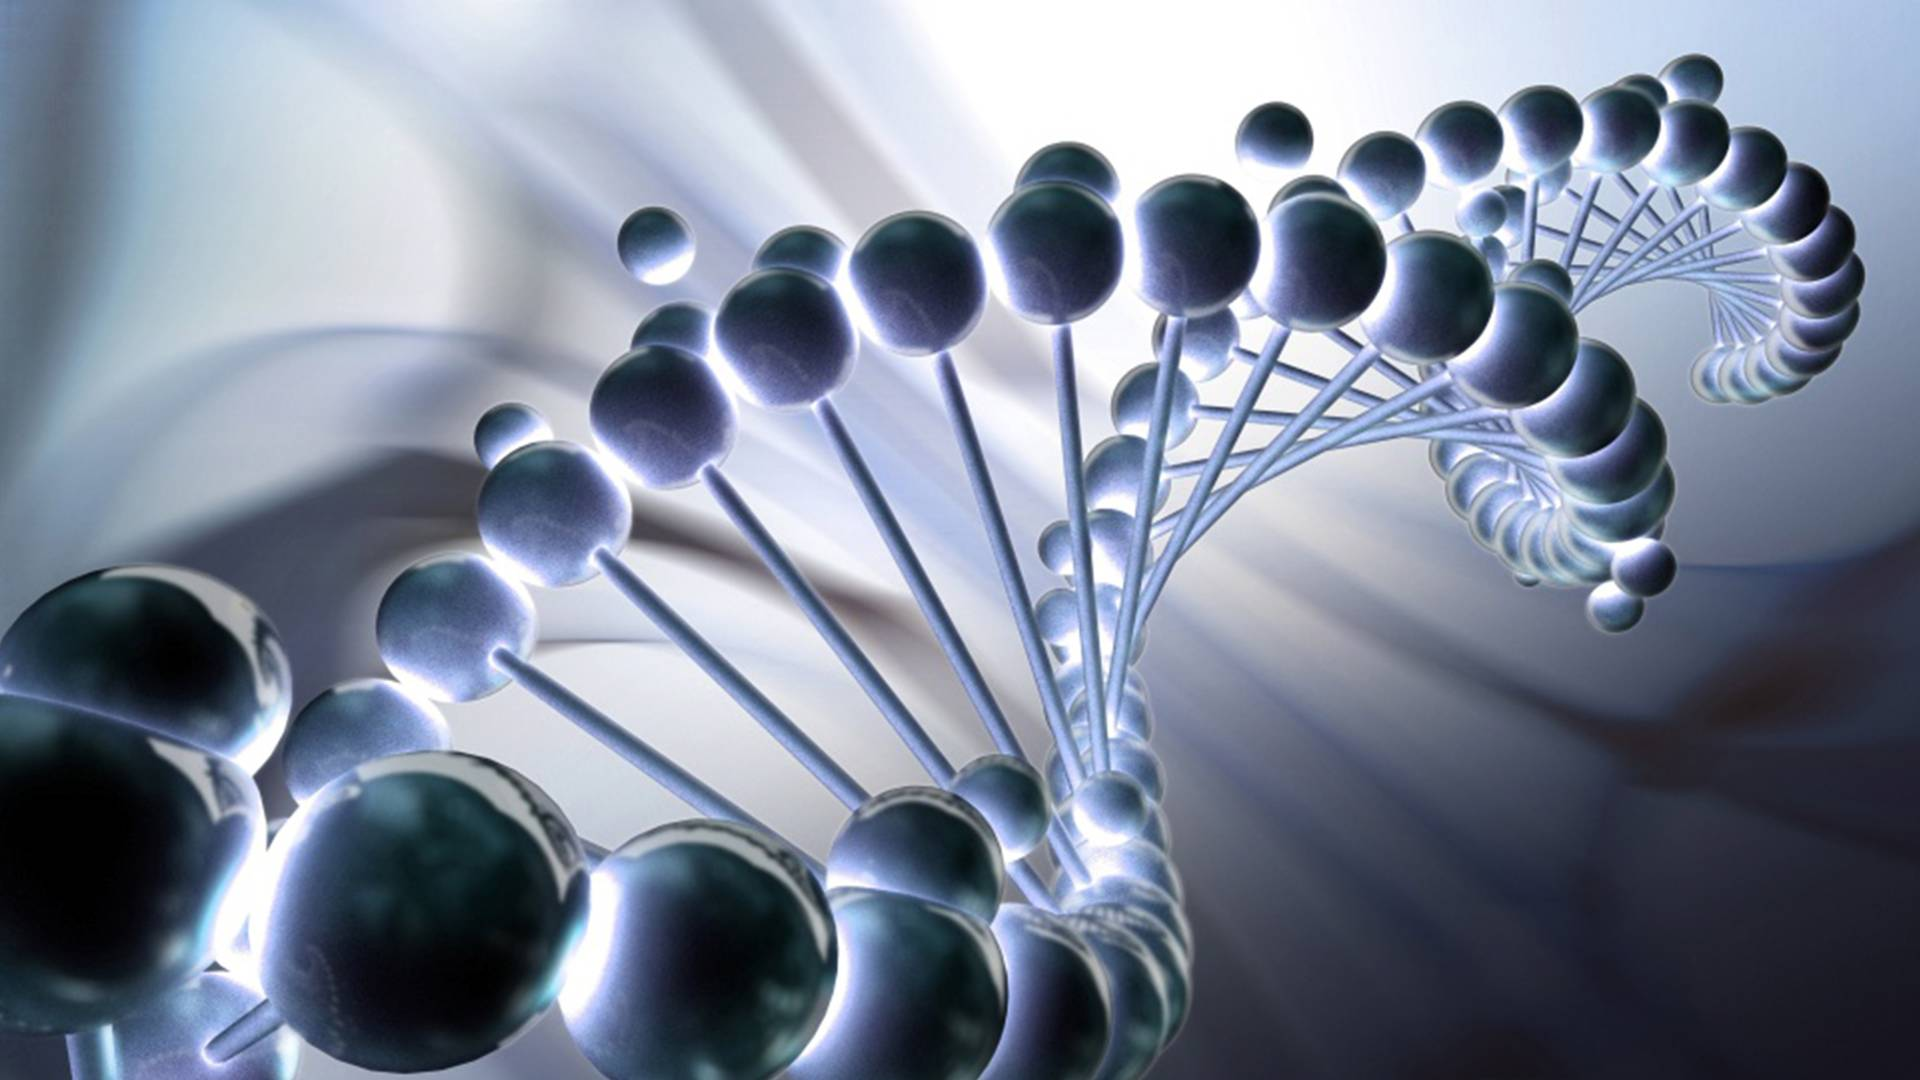 Close-up of a double helix